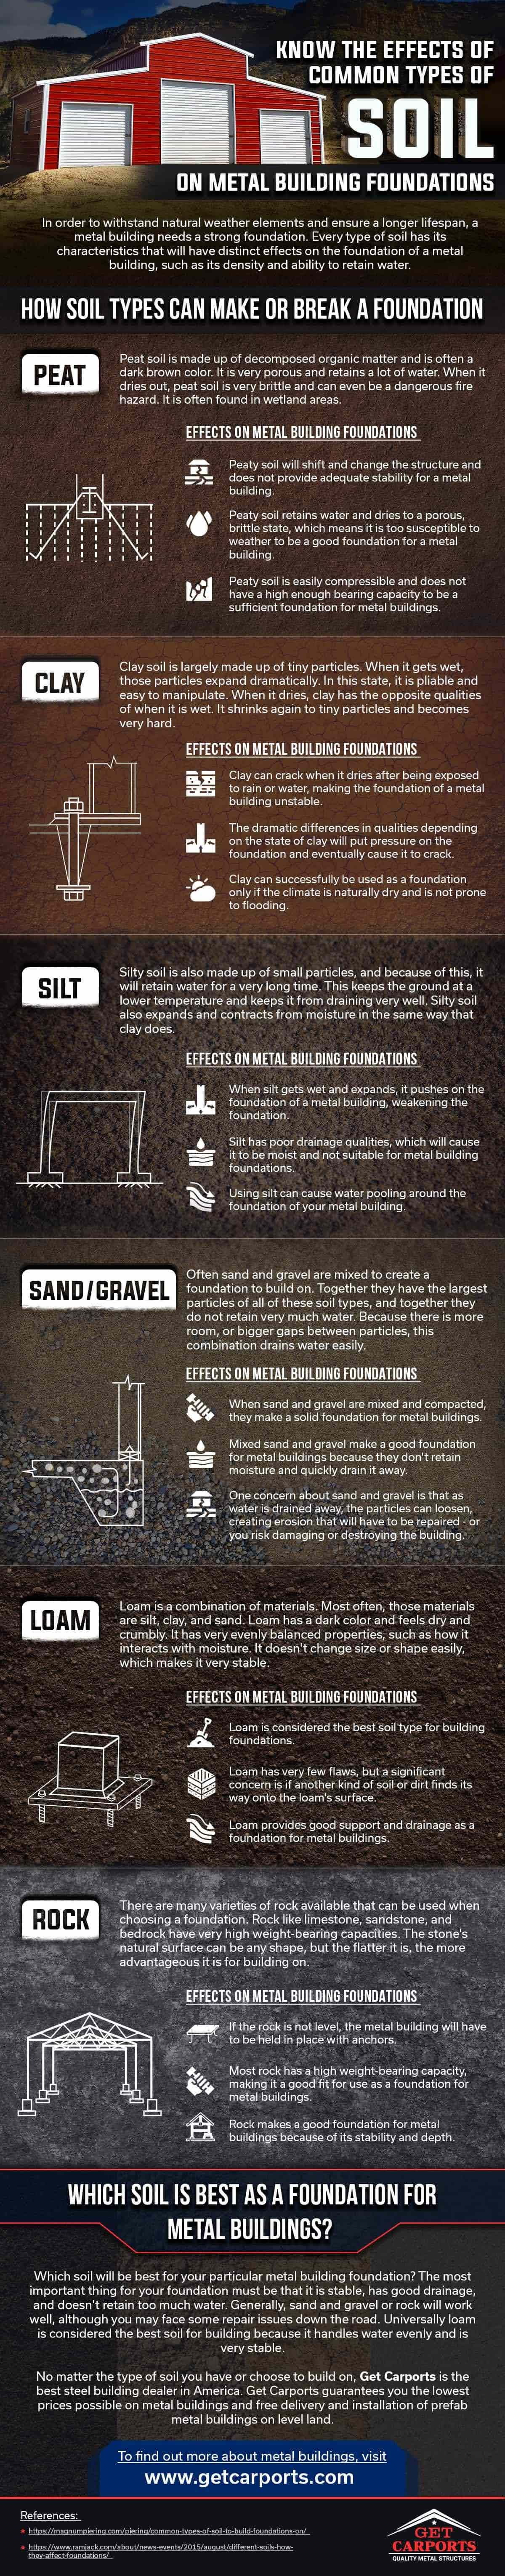 know-the-effects-of-common-types-of-soil-on-metal-building-foundations-infographic